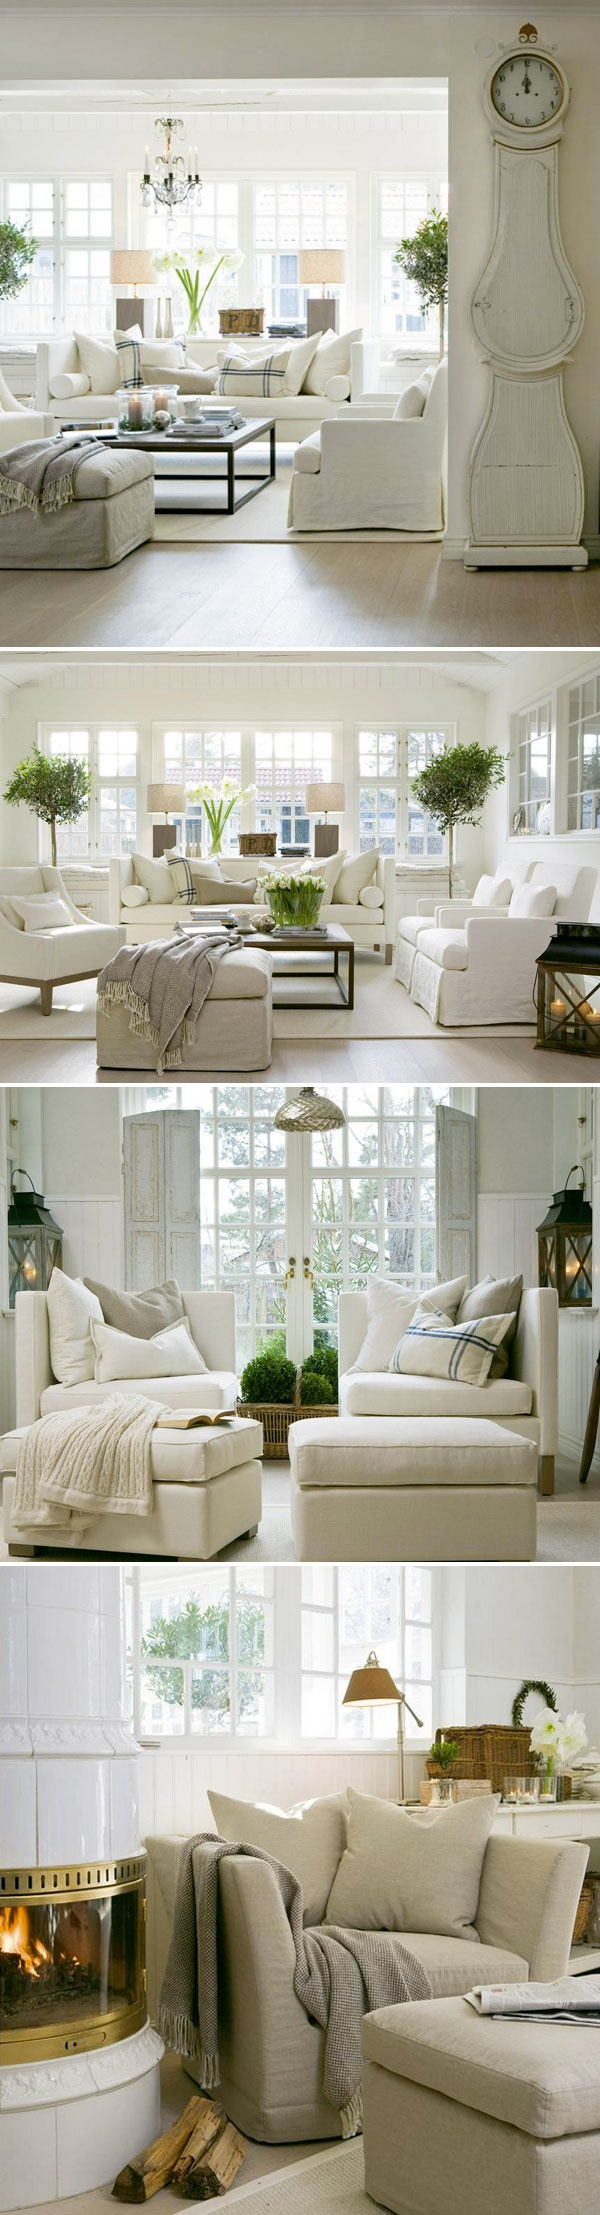 Gorgeous white design by Slettvoll. Check out that amazing giant clock! Love all the lanterns and plants, too. | #whites